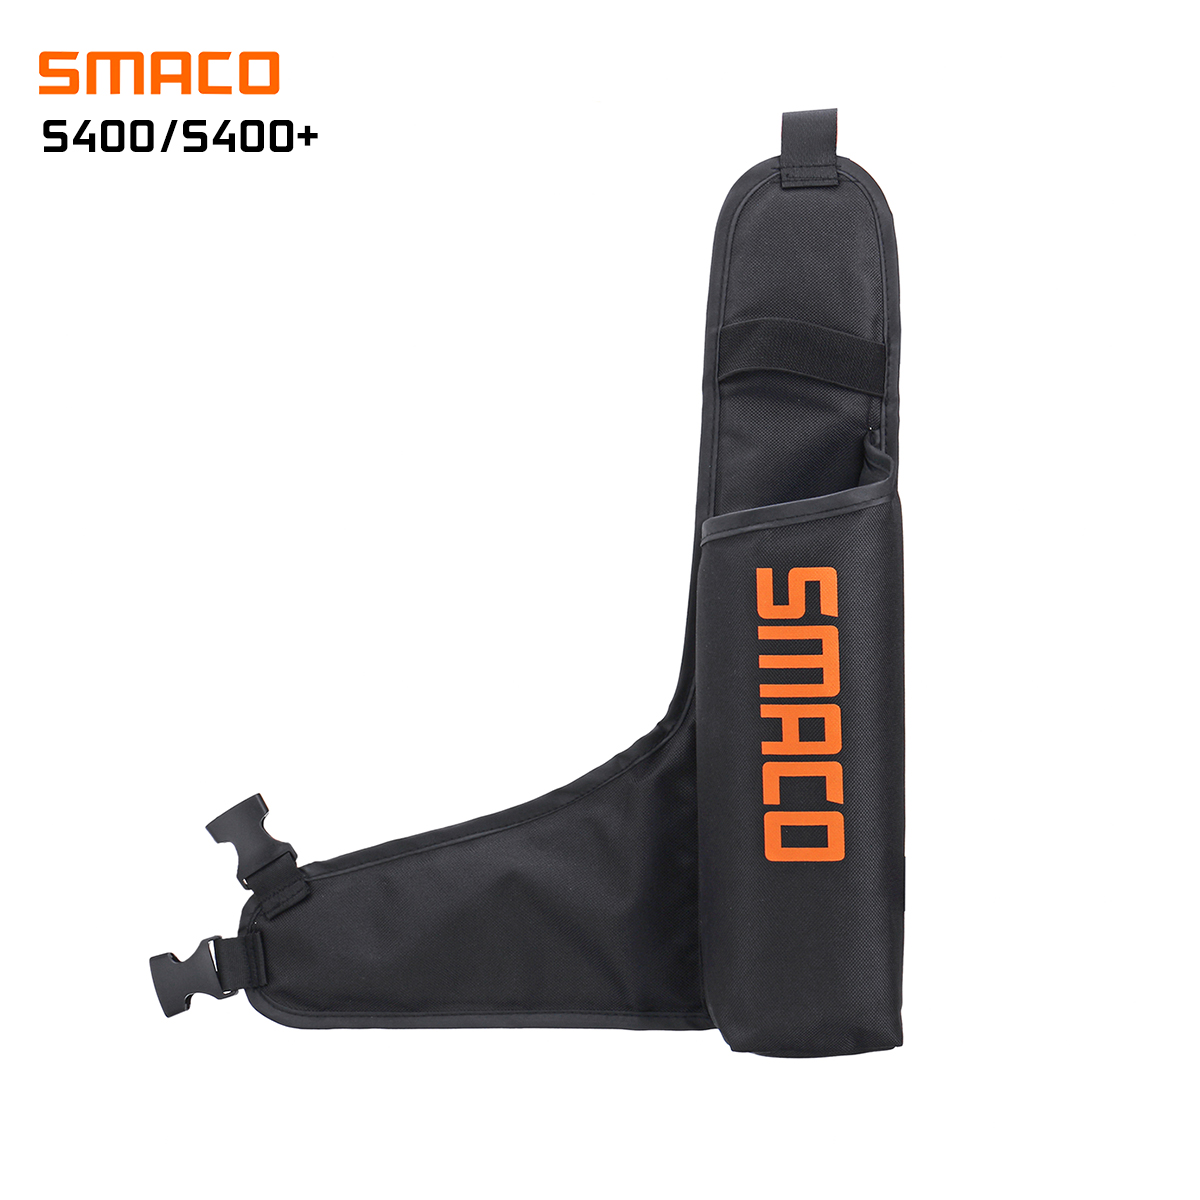 SMACO 600D High-Elastic PVC Oxygen Tank Storage Bag Lightweight Respirator Bag Diving Travel For S400/S400 Plus